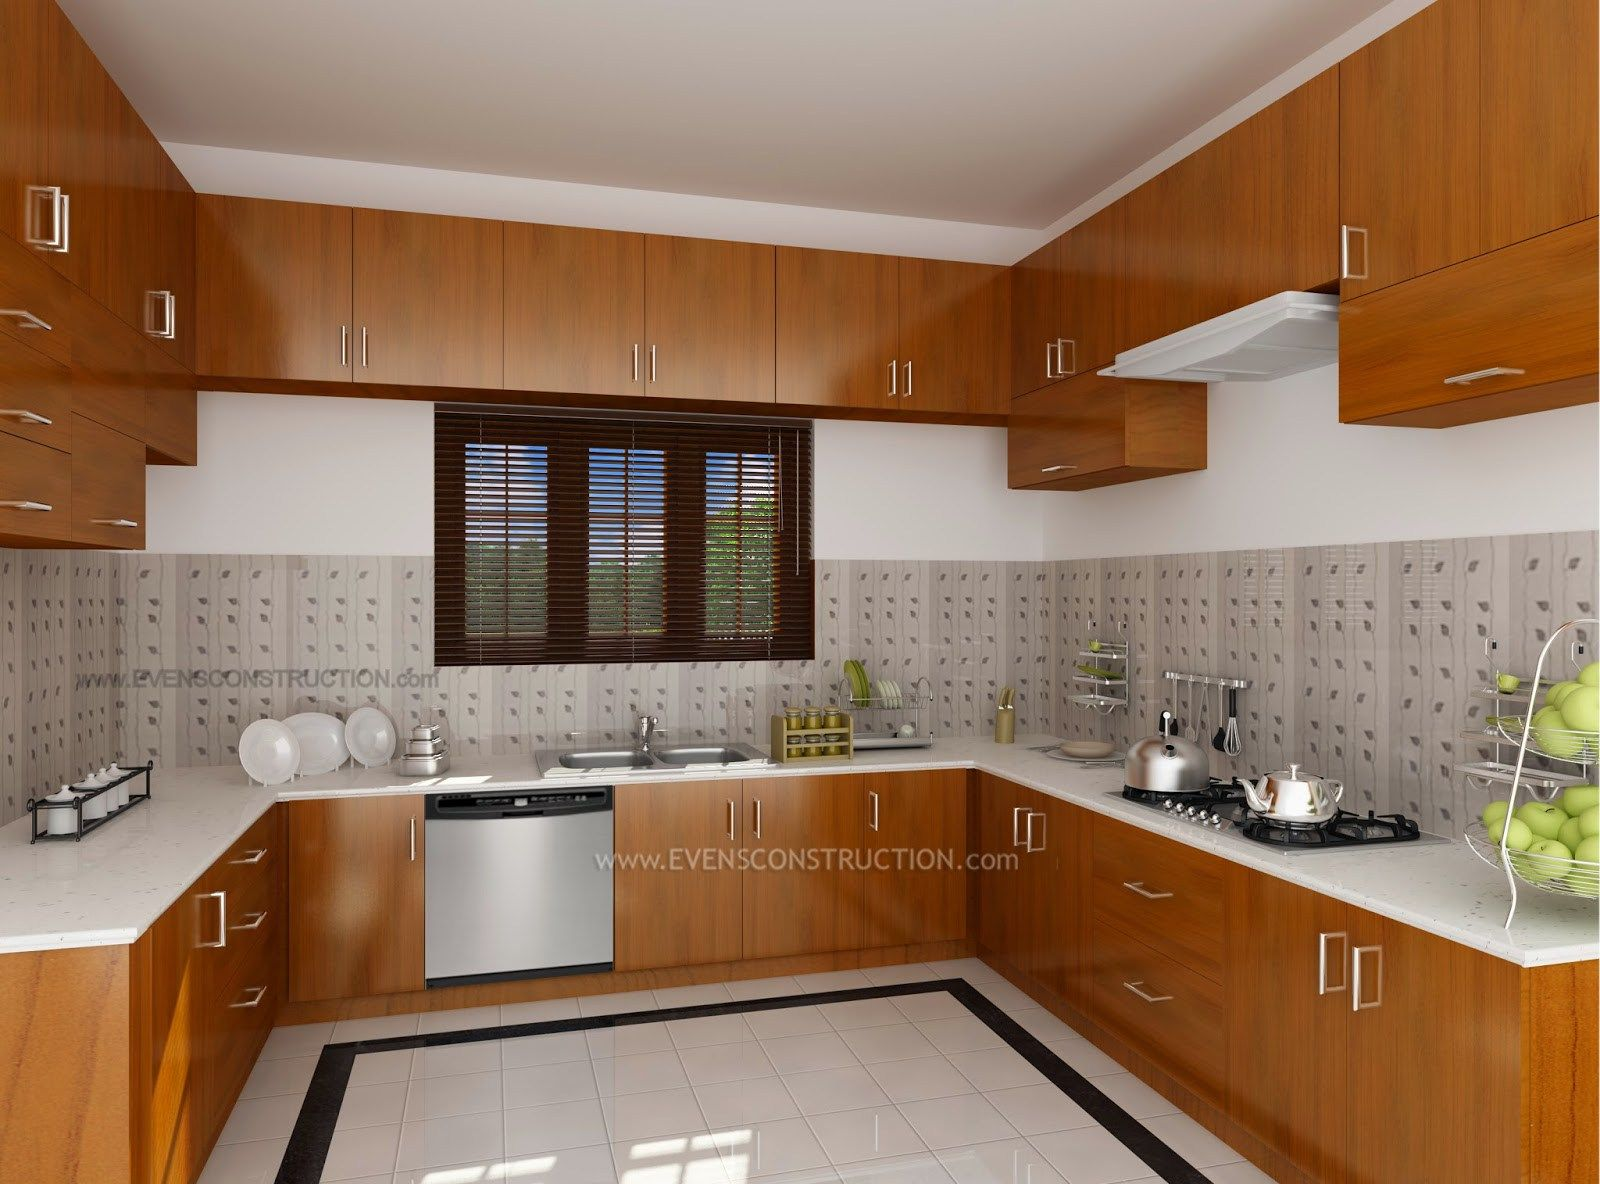 design interior kitchen home kerala modern house kitchen kitchen ...